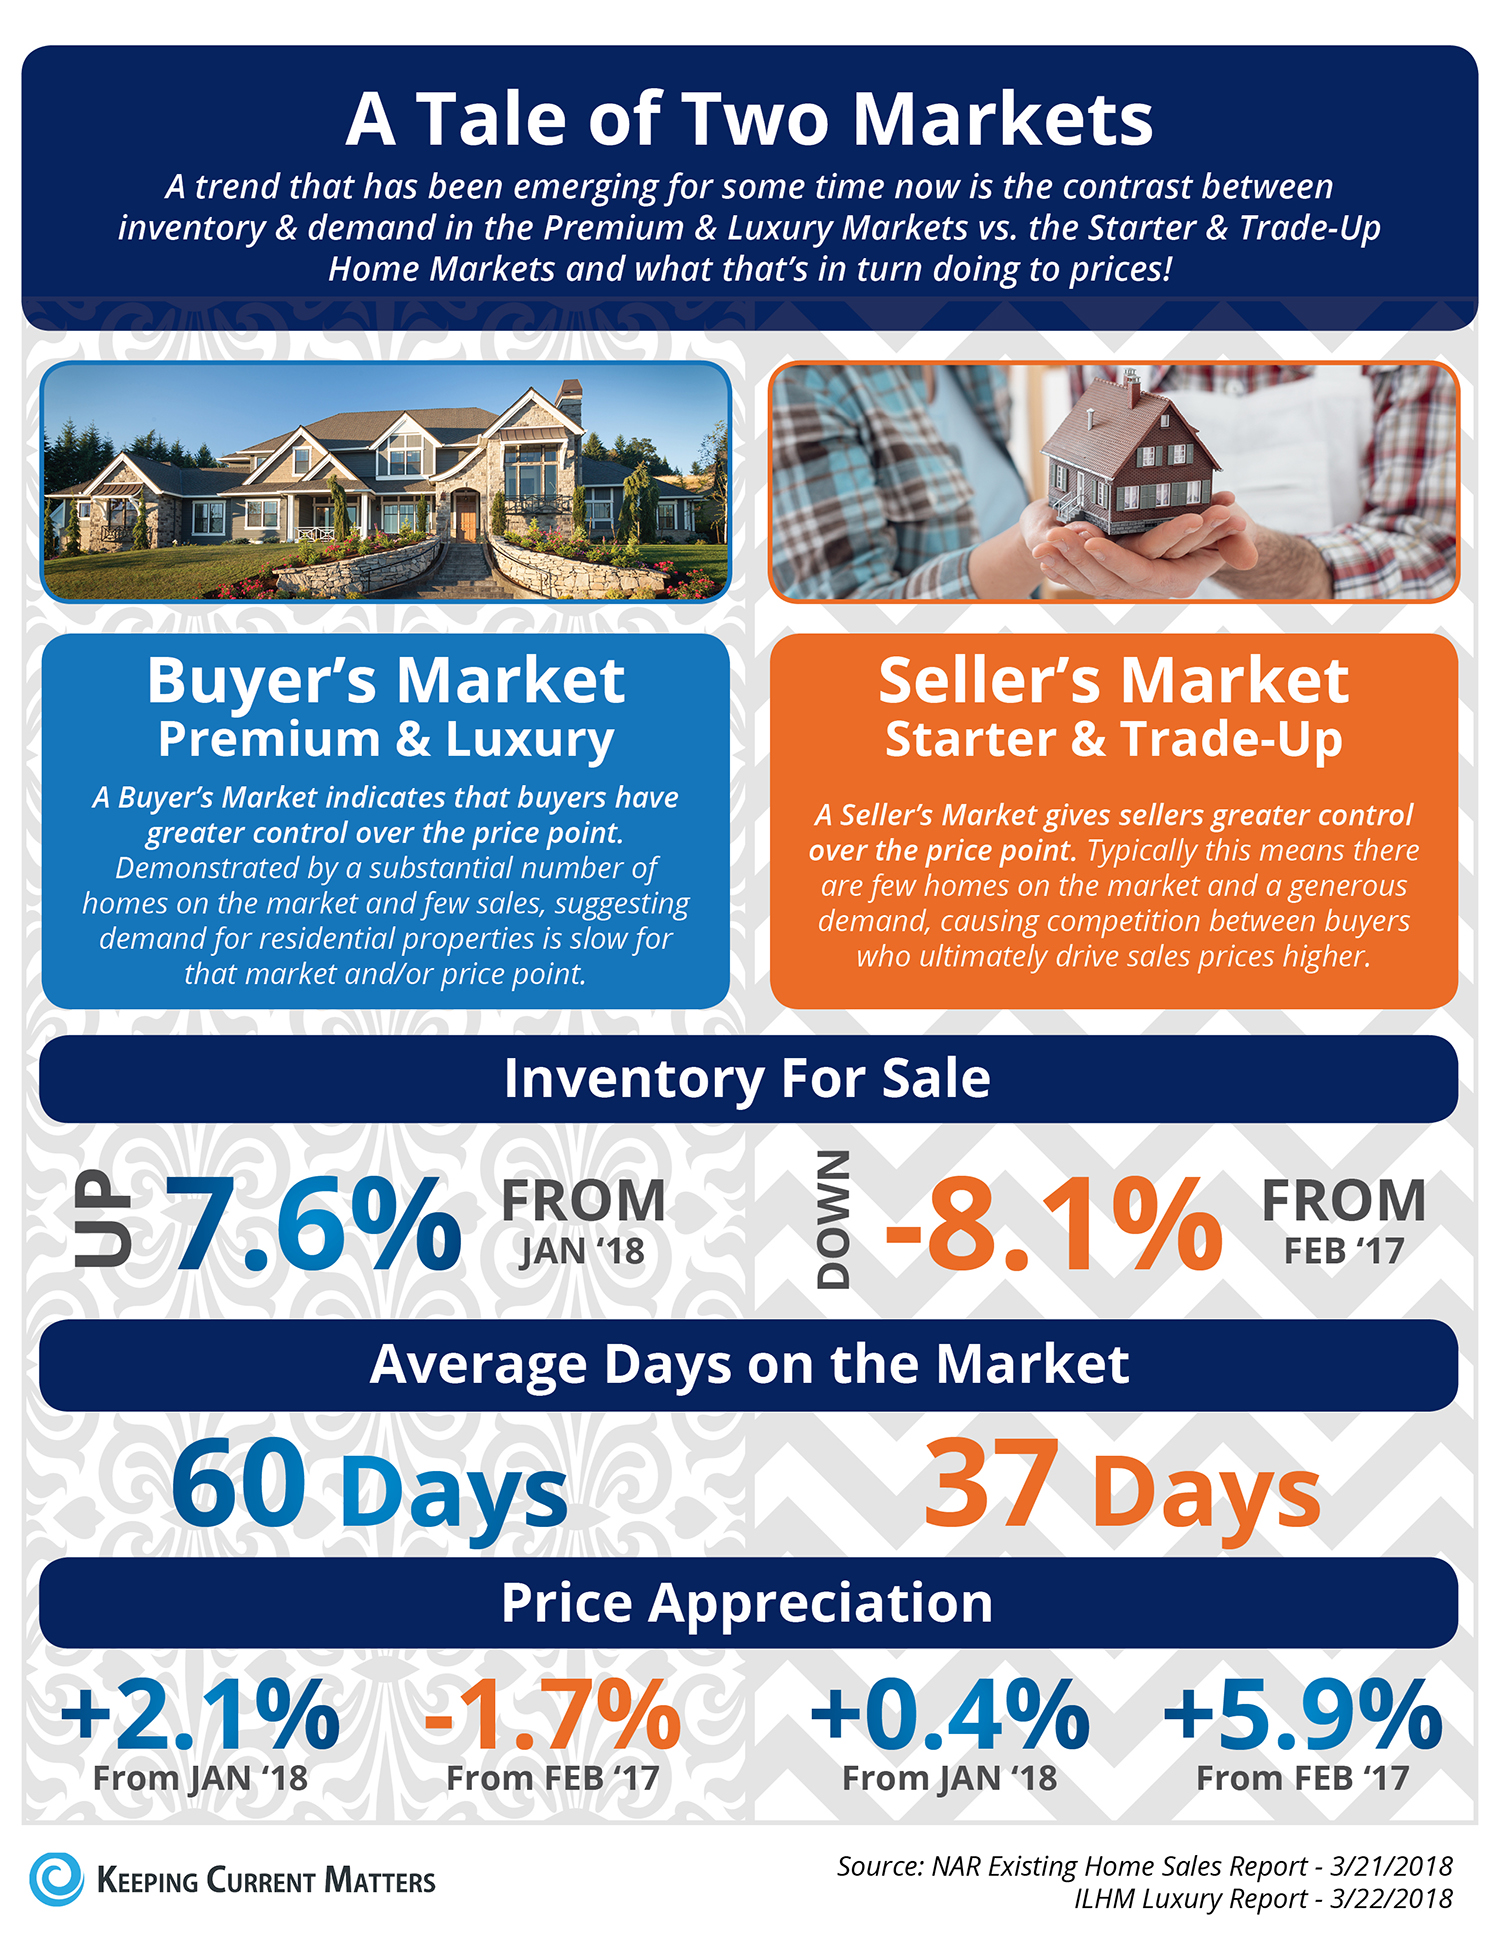 A Tale of Two Markets [INFOGRAPHIC] | Keeping Current Matters